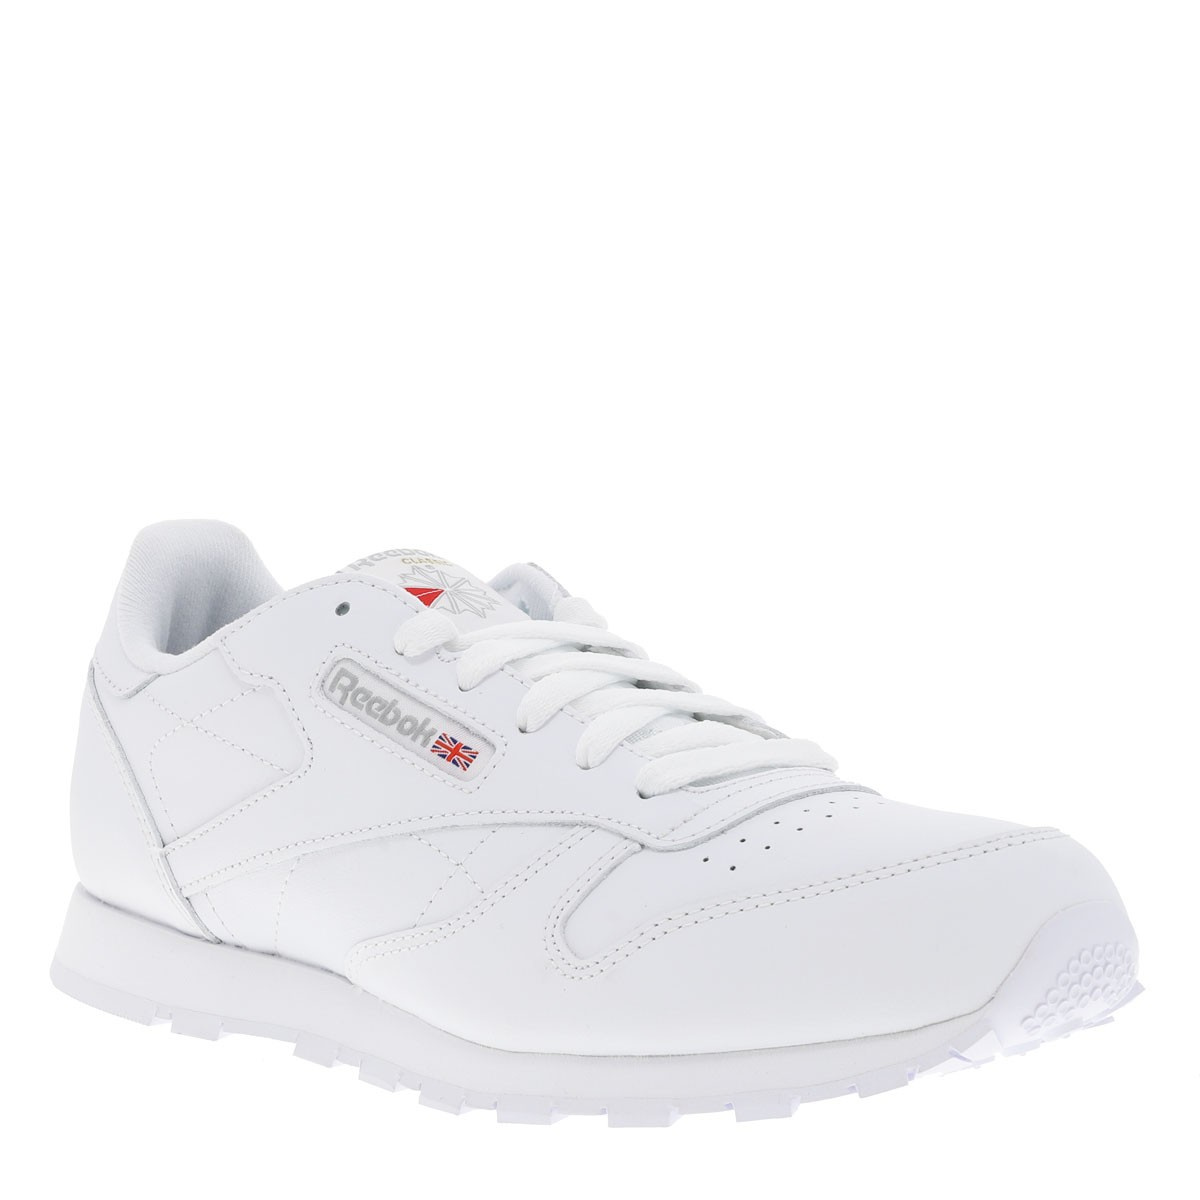 REEBOK Baskets basses CLASSIC LEATHER cuir